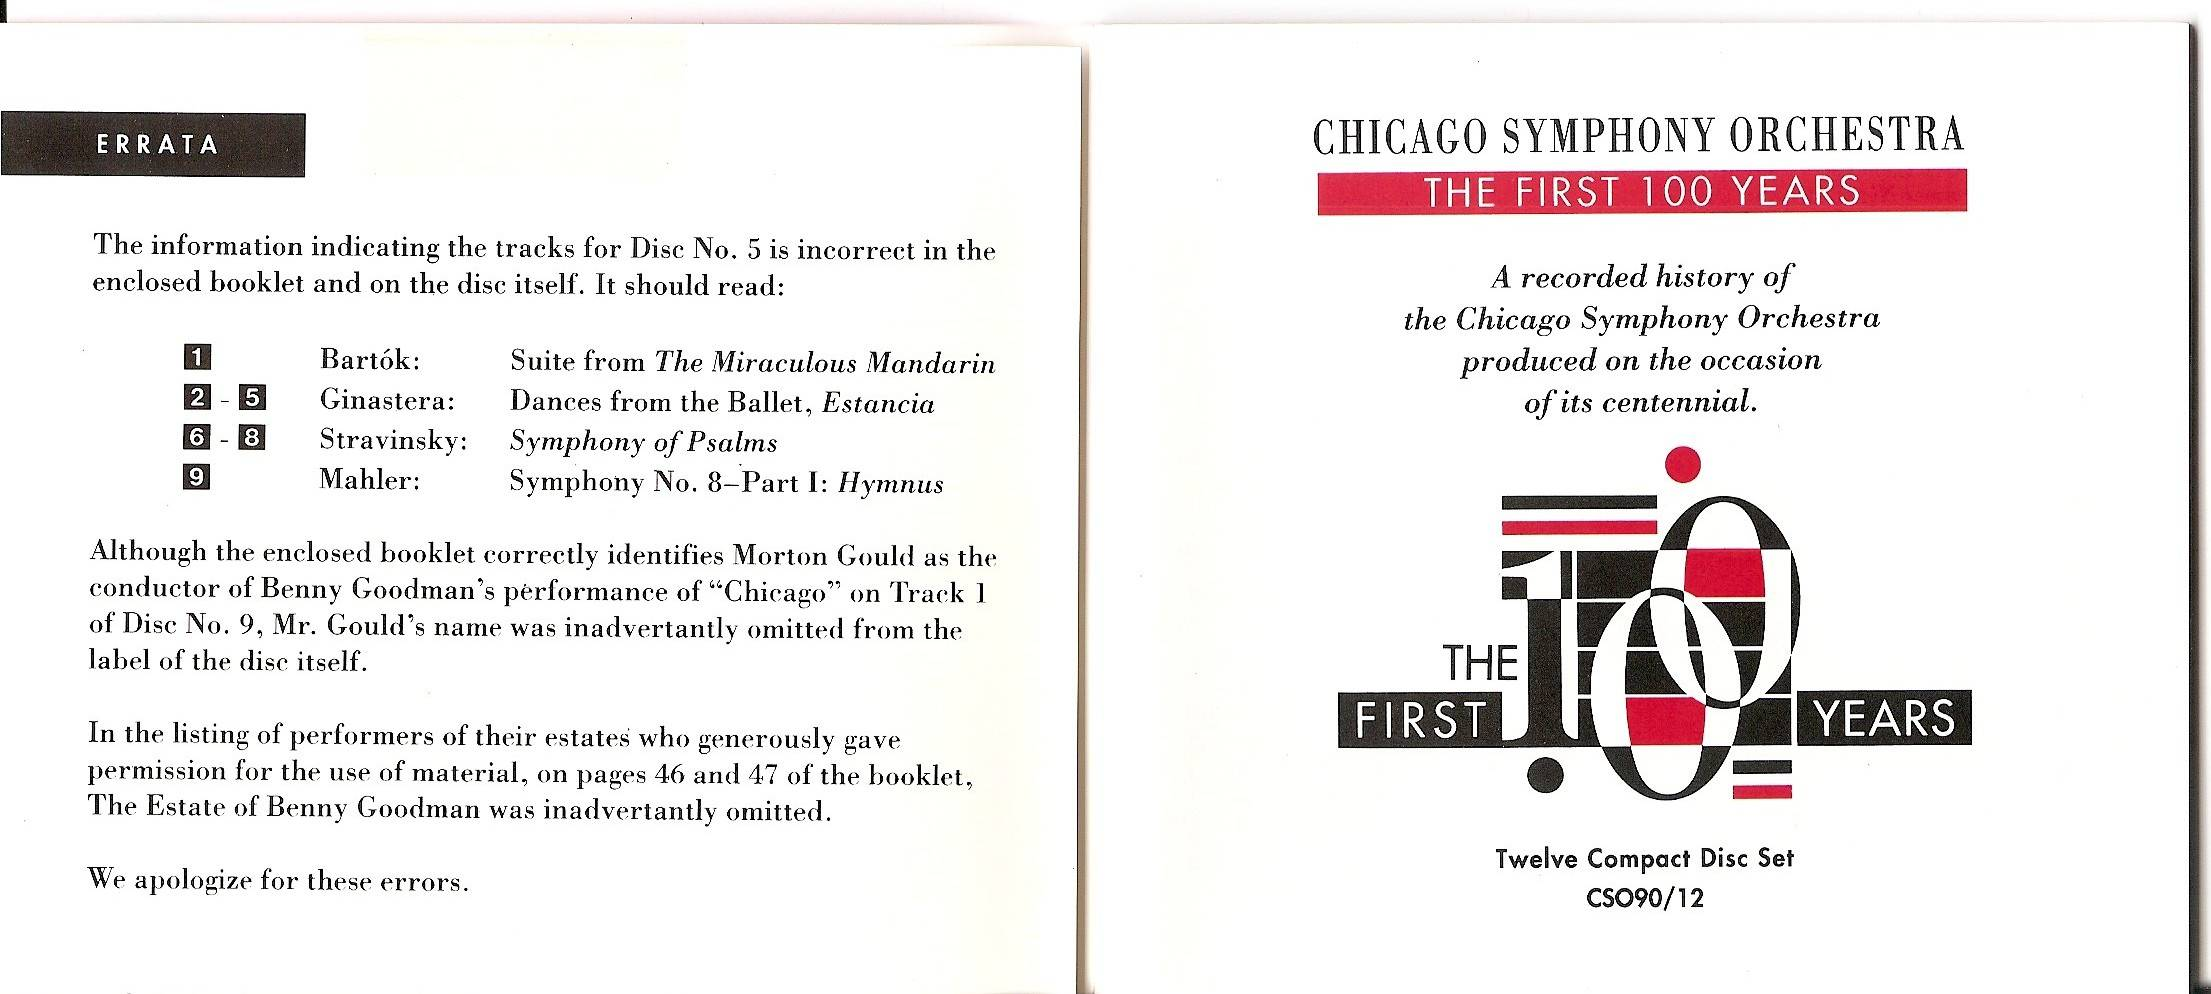 Chicago Symphony Orchestra - From The Archives: The First 100 Years, 12-CD set (1991) (page 3 of  7)